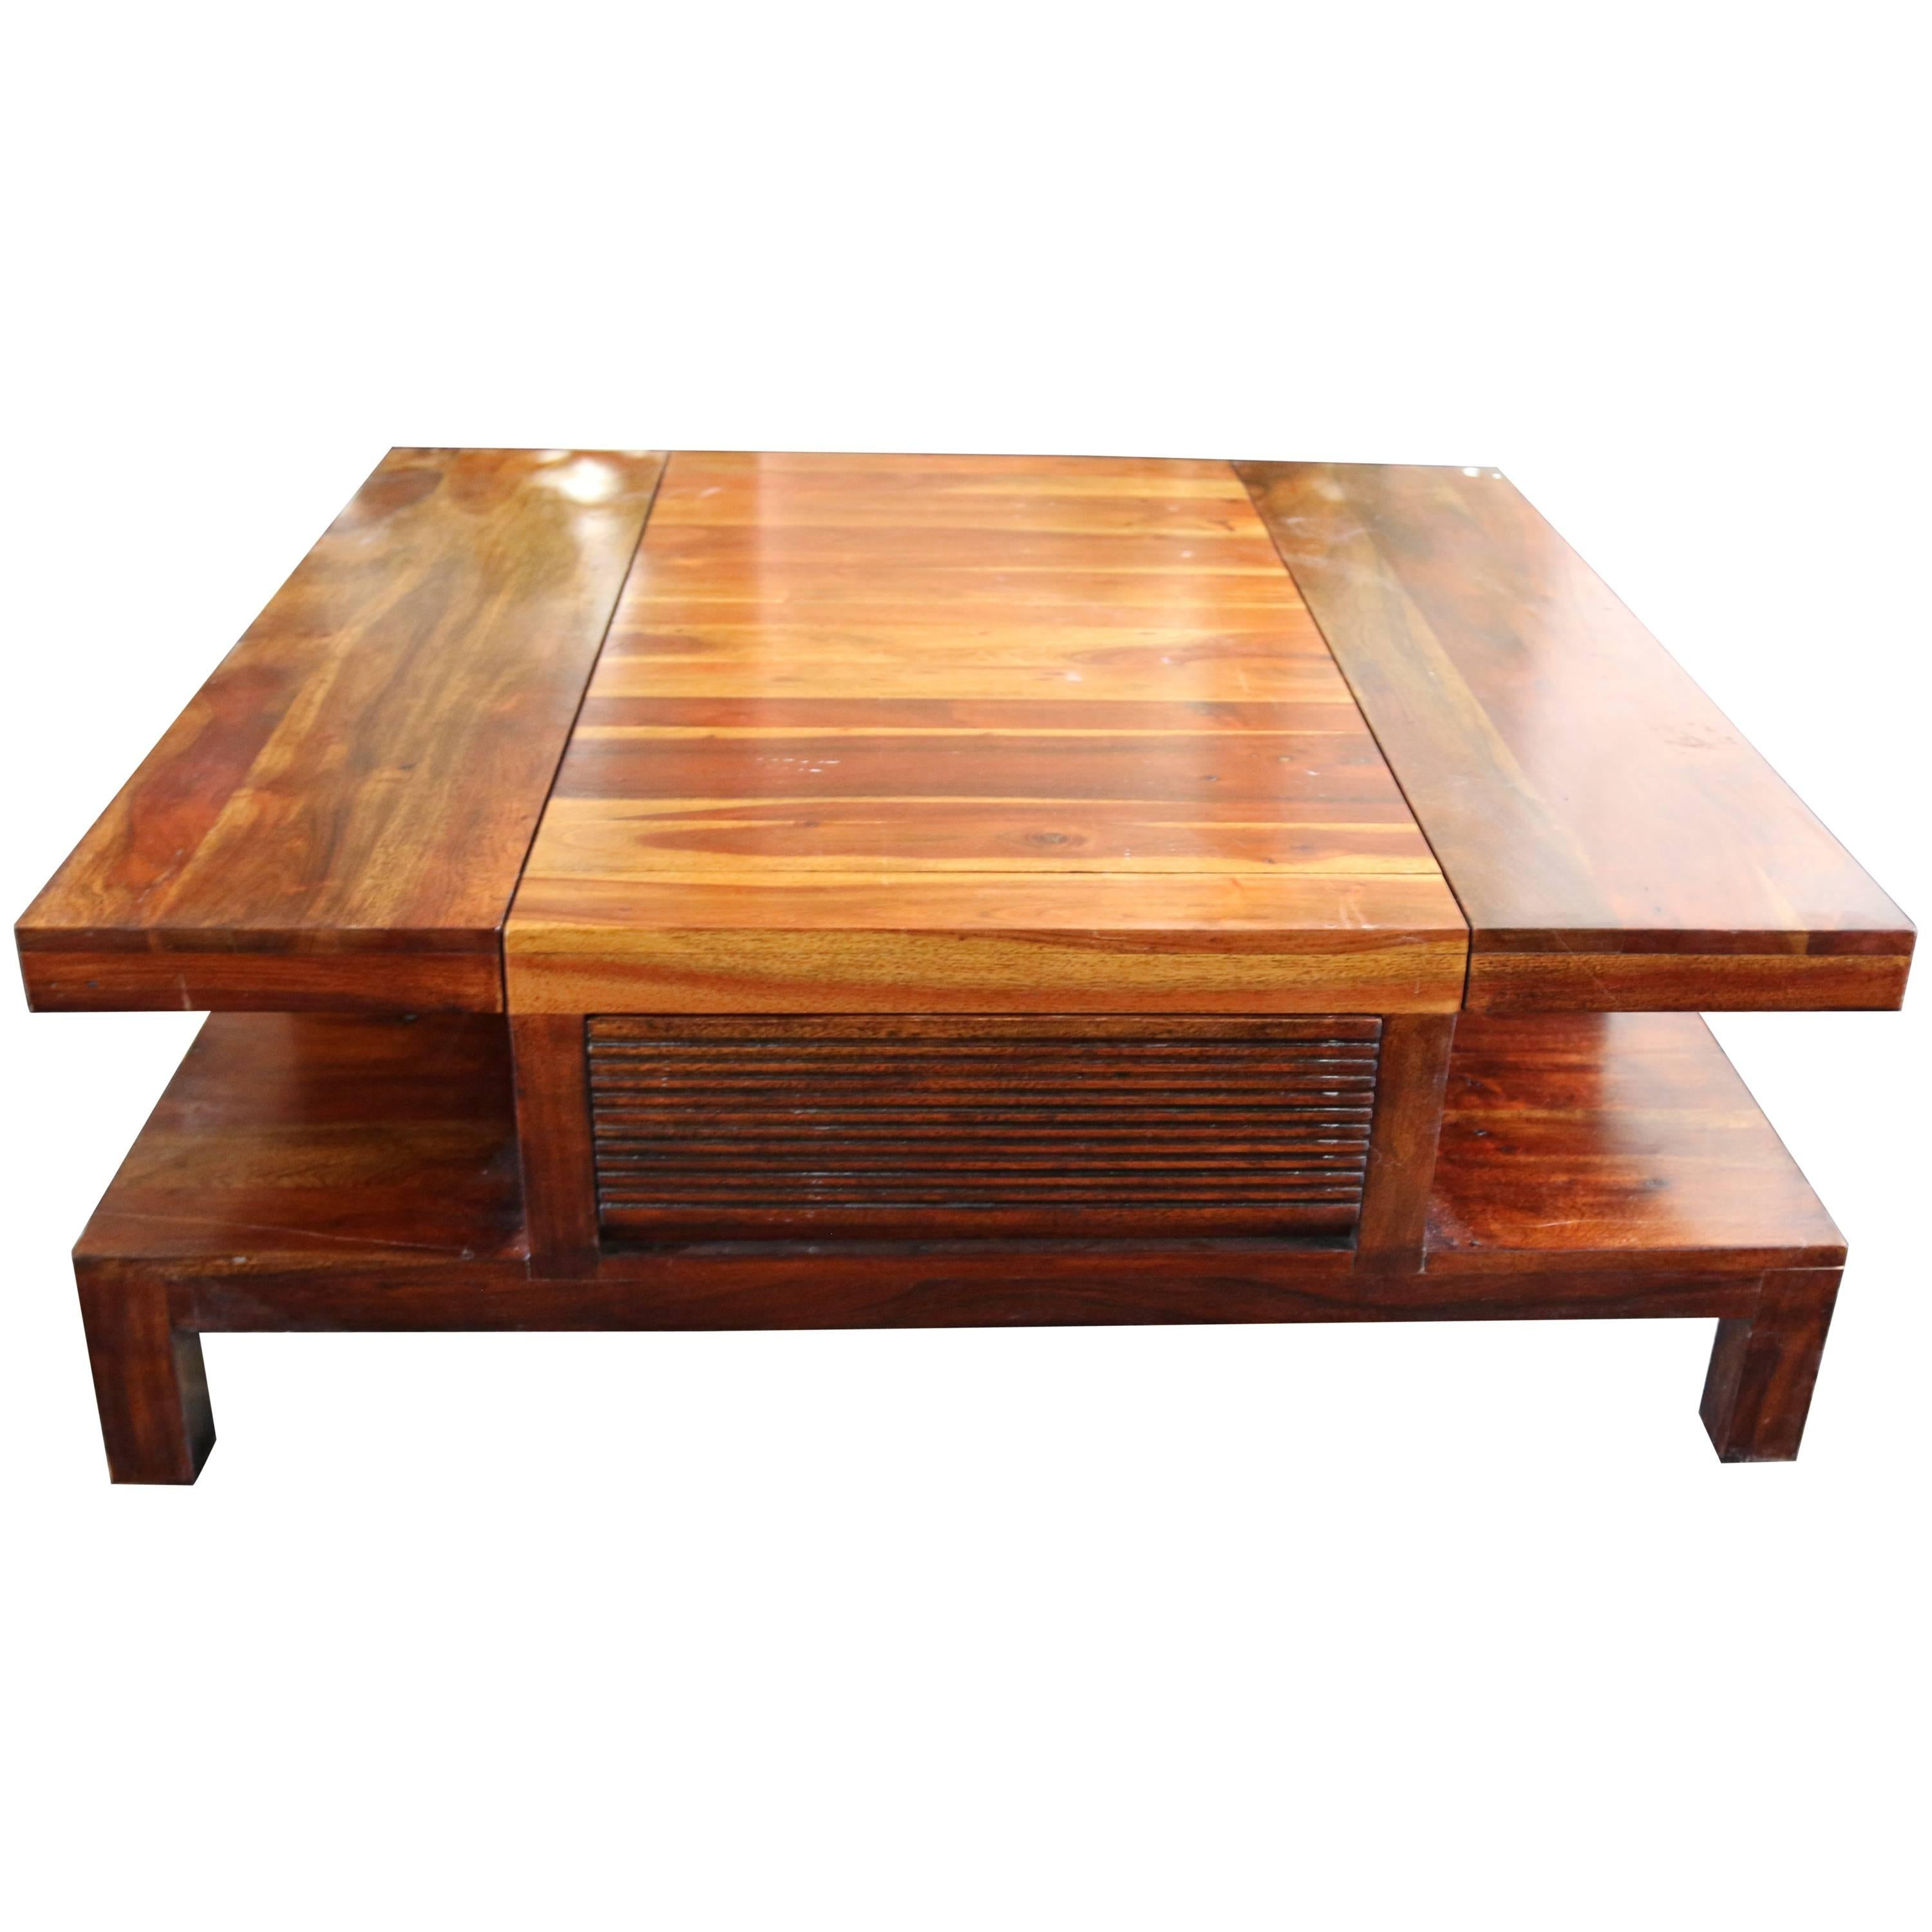 20th Century Square Table From Exotic Wood with Two Side Drawers